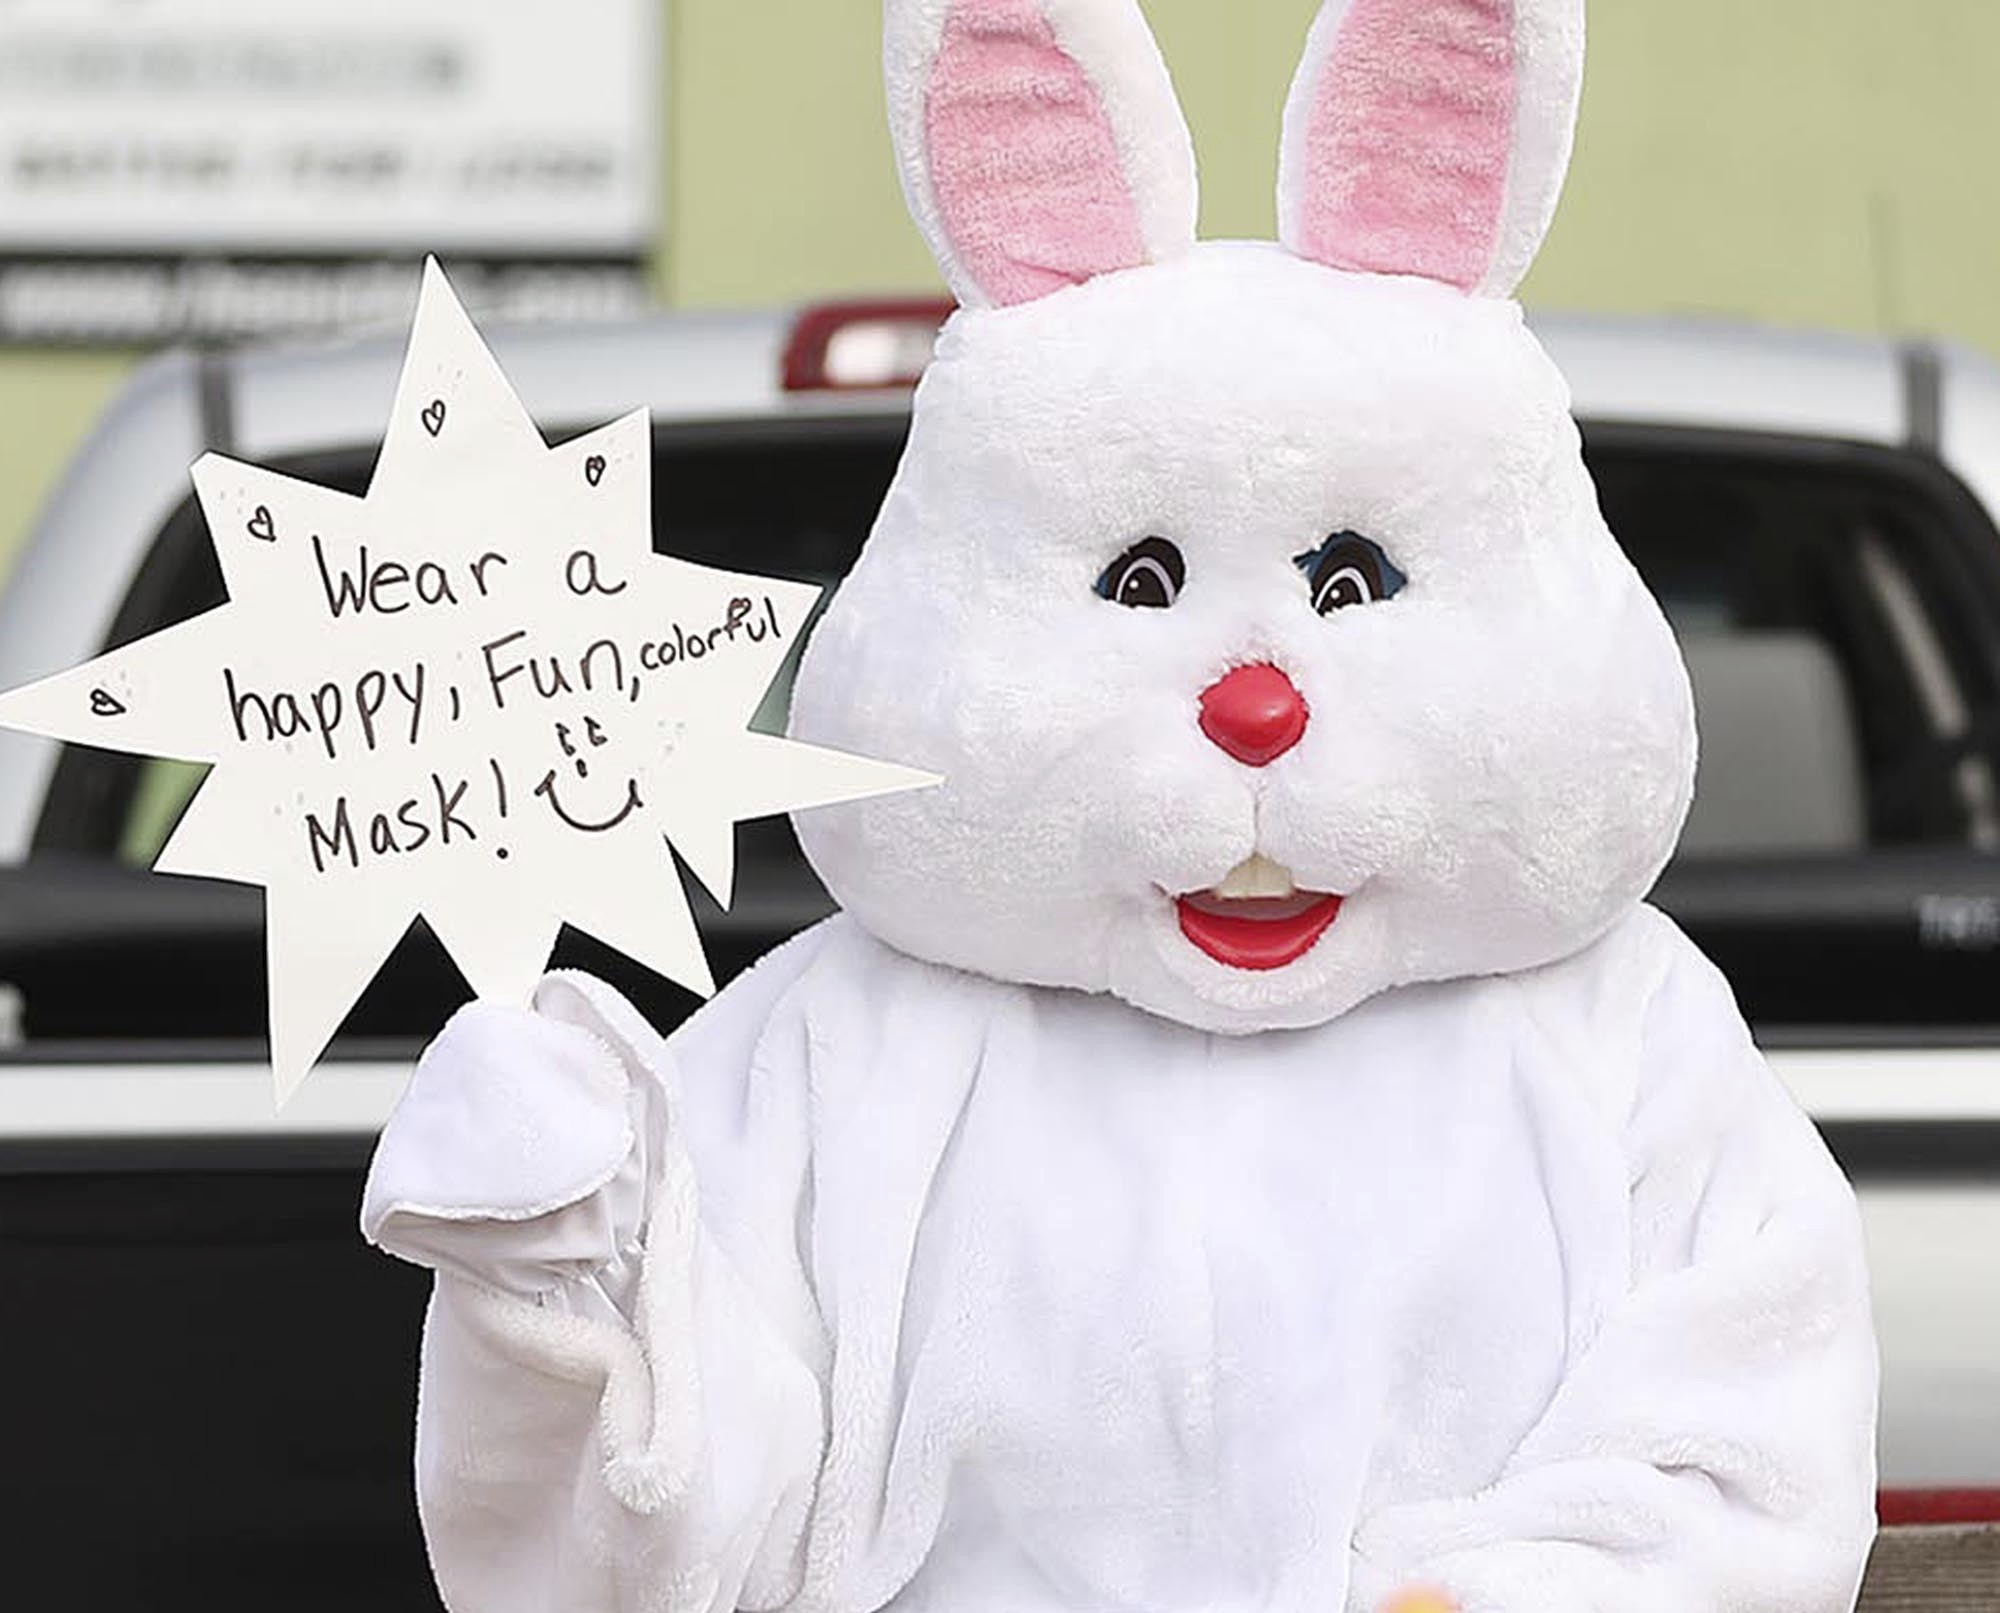 Annual Winter Park Easter Egg Hunt Canceled Due To Covid 19 Concerns